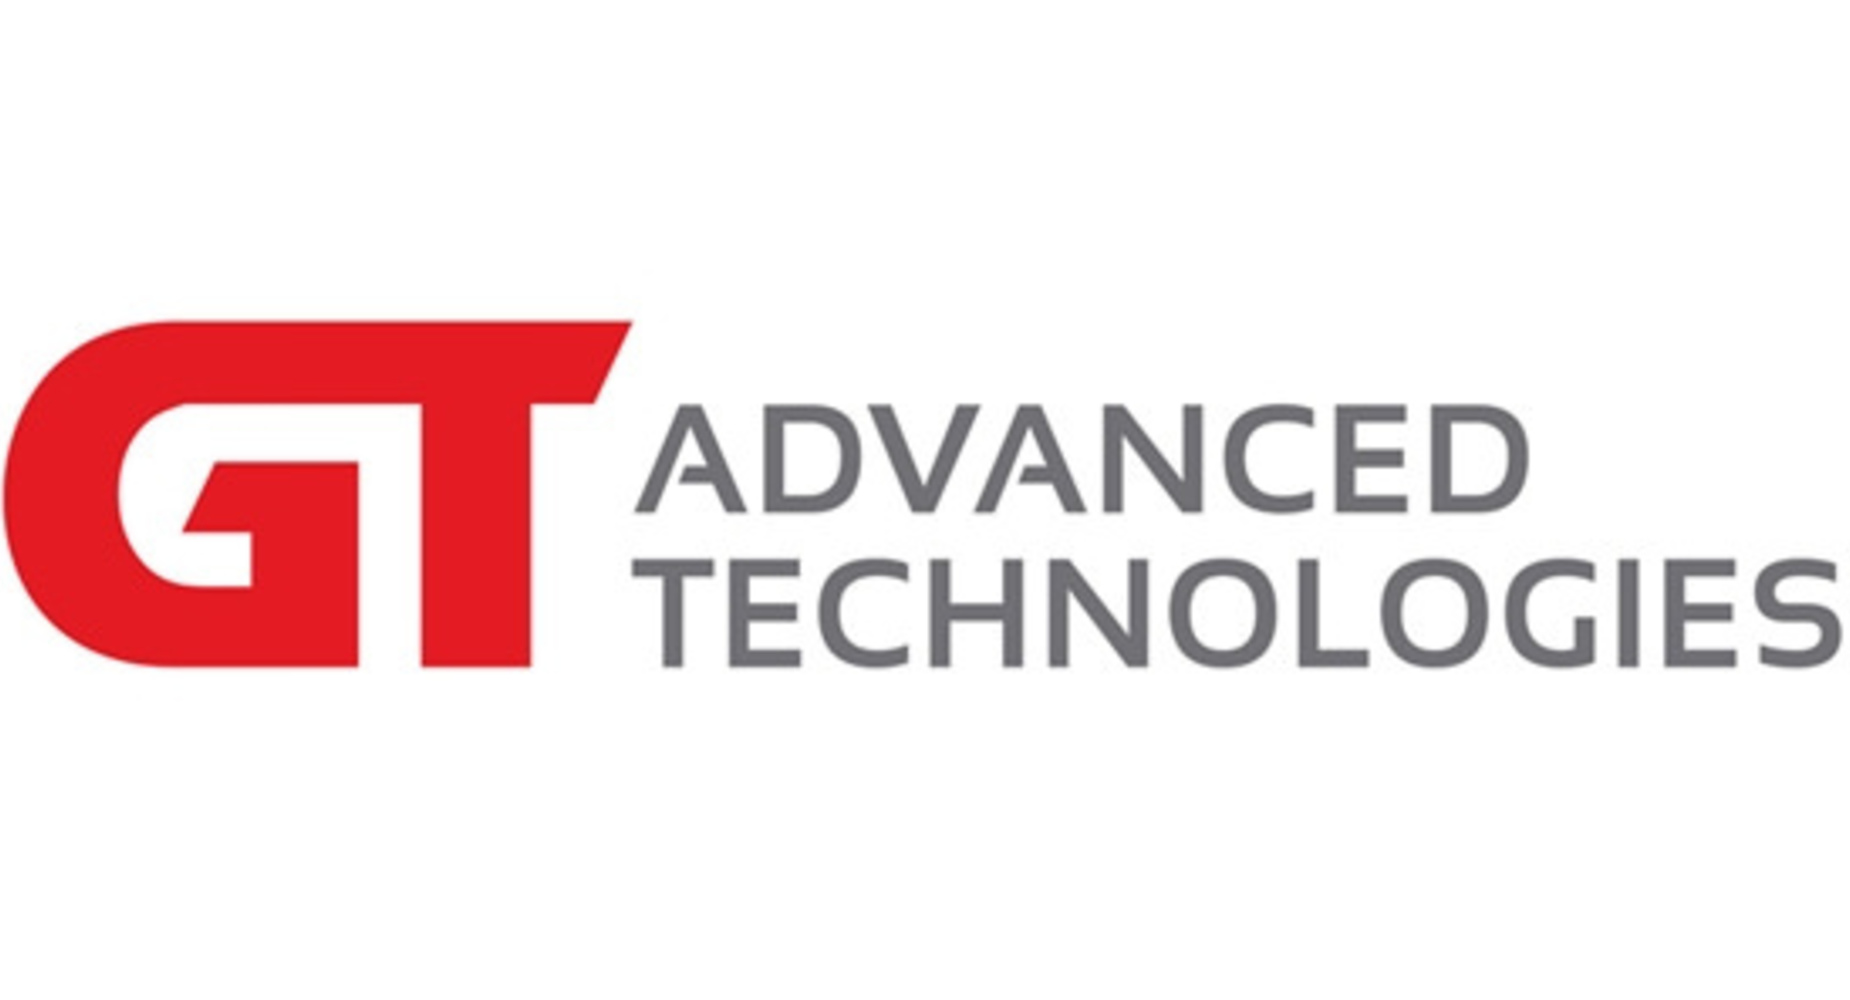 GT Advanced Technologies Inc (OTCMKTS:GTATQ) Has Sold Hyperion Division For $1.1 Million